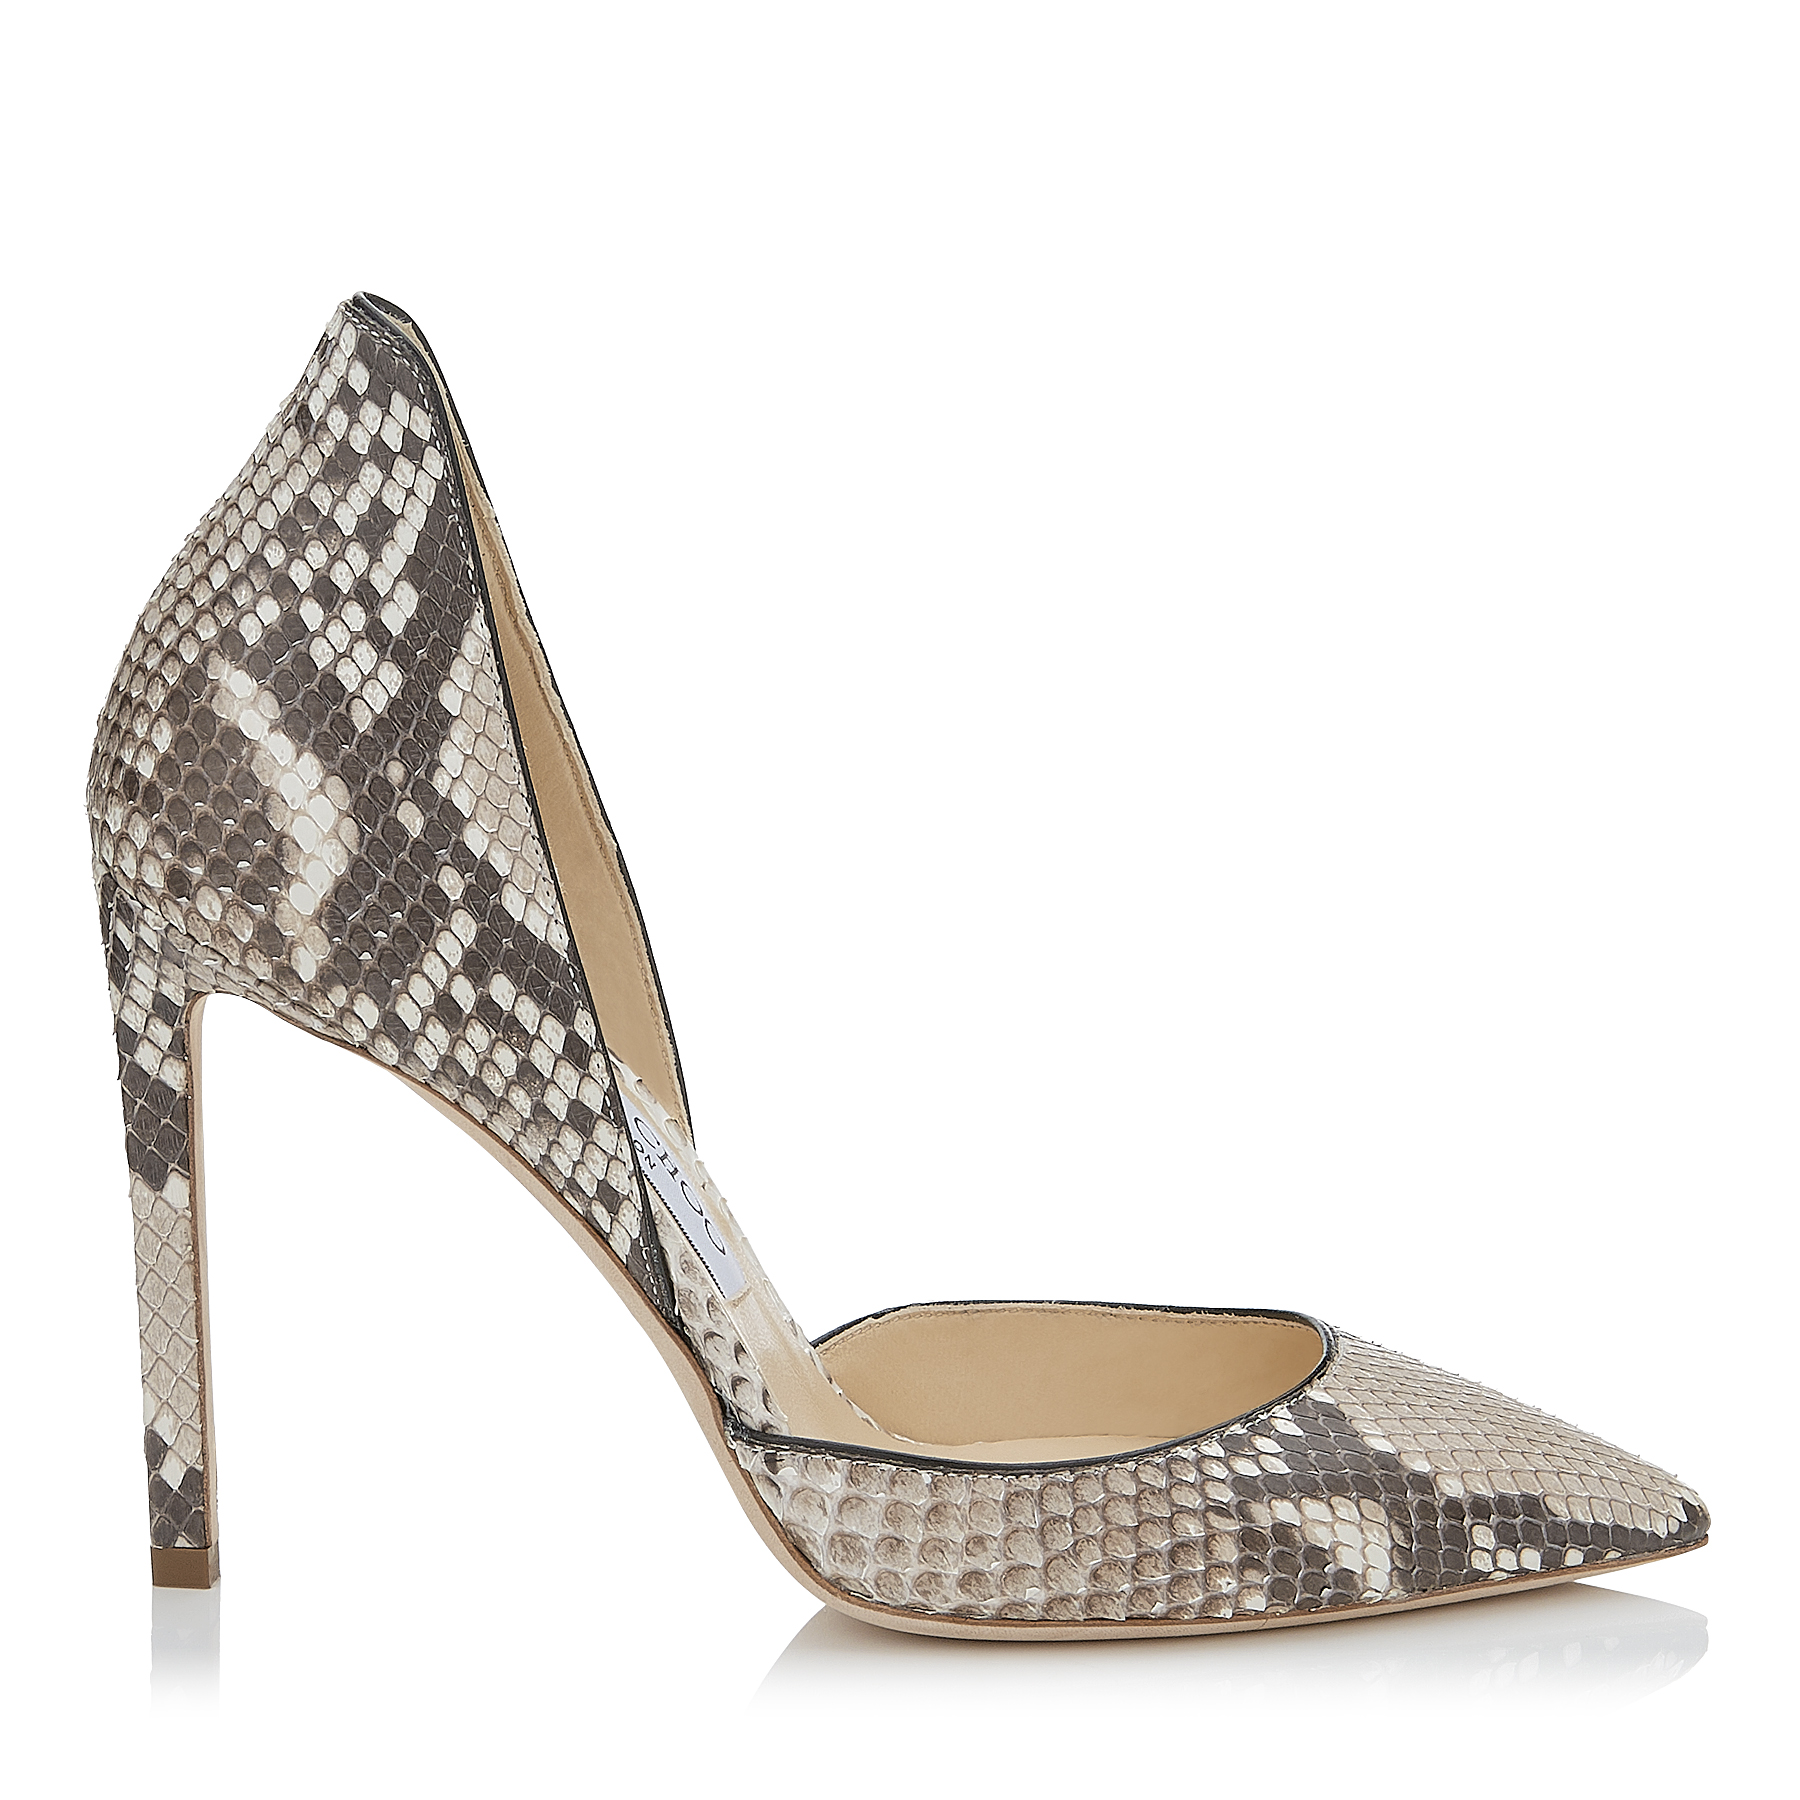 LIZ 100 Natural Matt Python Pointy Toe Pumps by Jimmy Choo